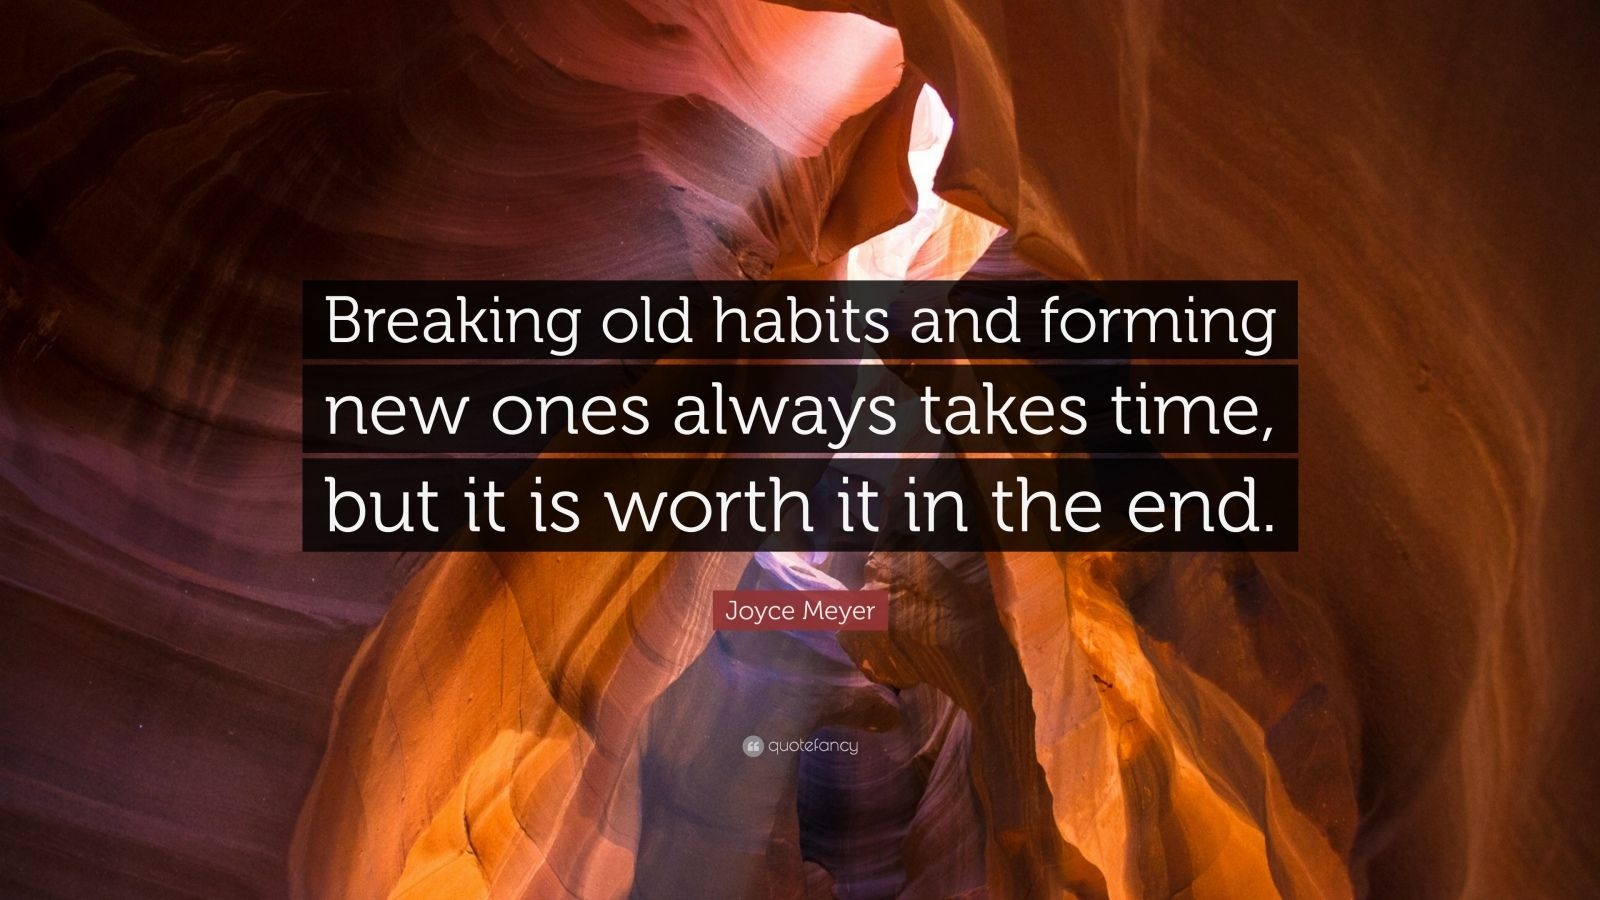 """Joyce Meyer Quote: """"Breaking old habits and forming new ones always takes time, but it is worth it in the end."""""""